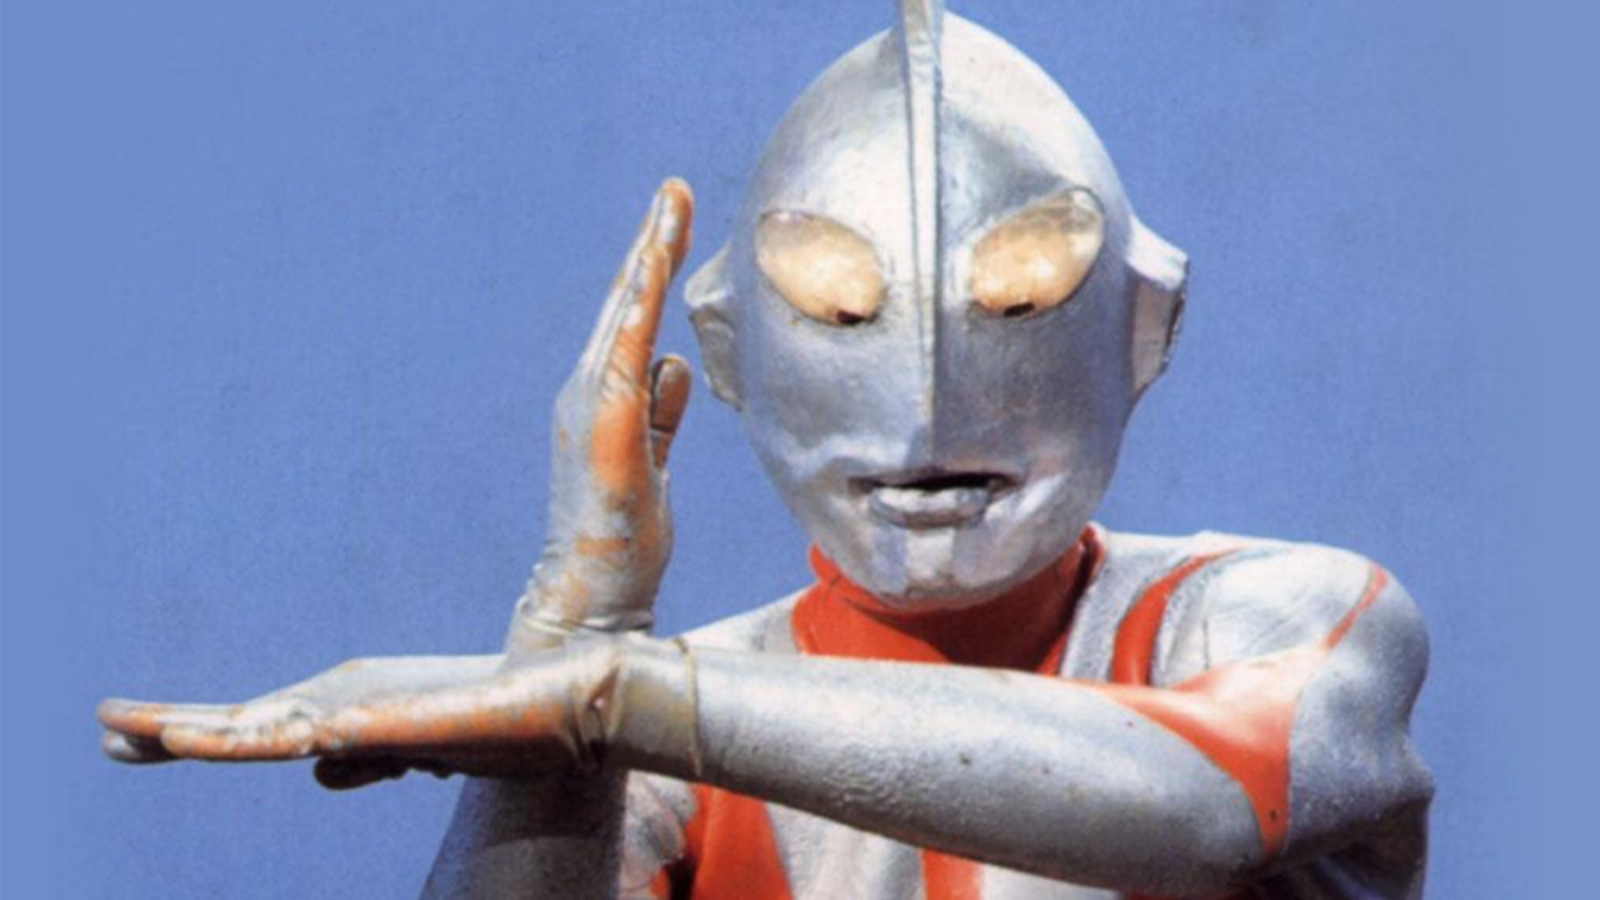 Every Single Ultraman Series Is Making Its Way to the U.S.